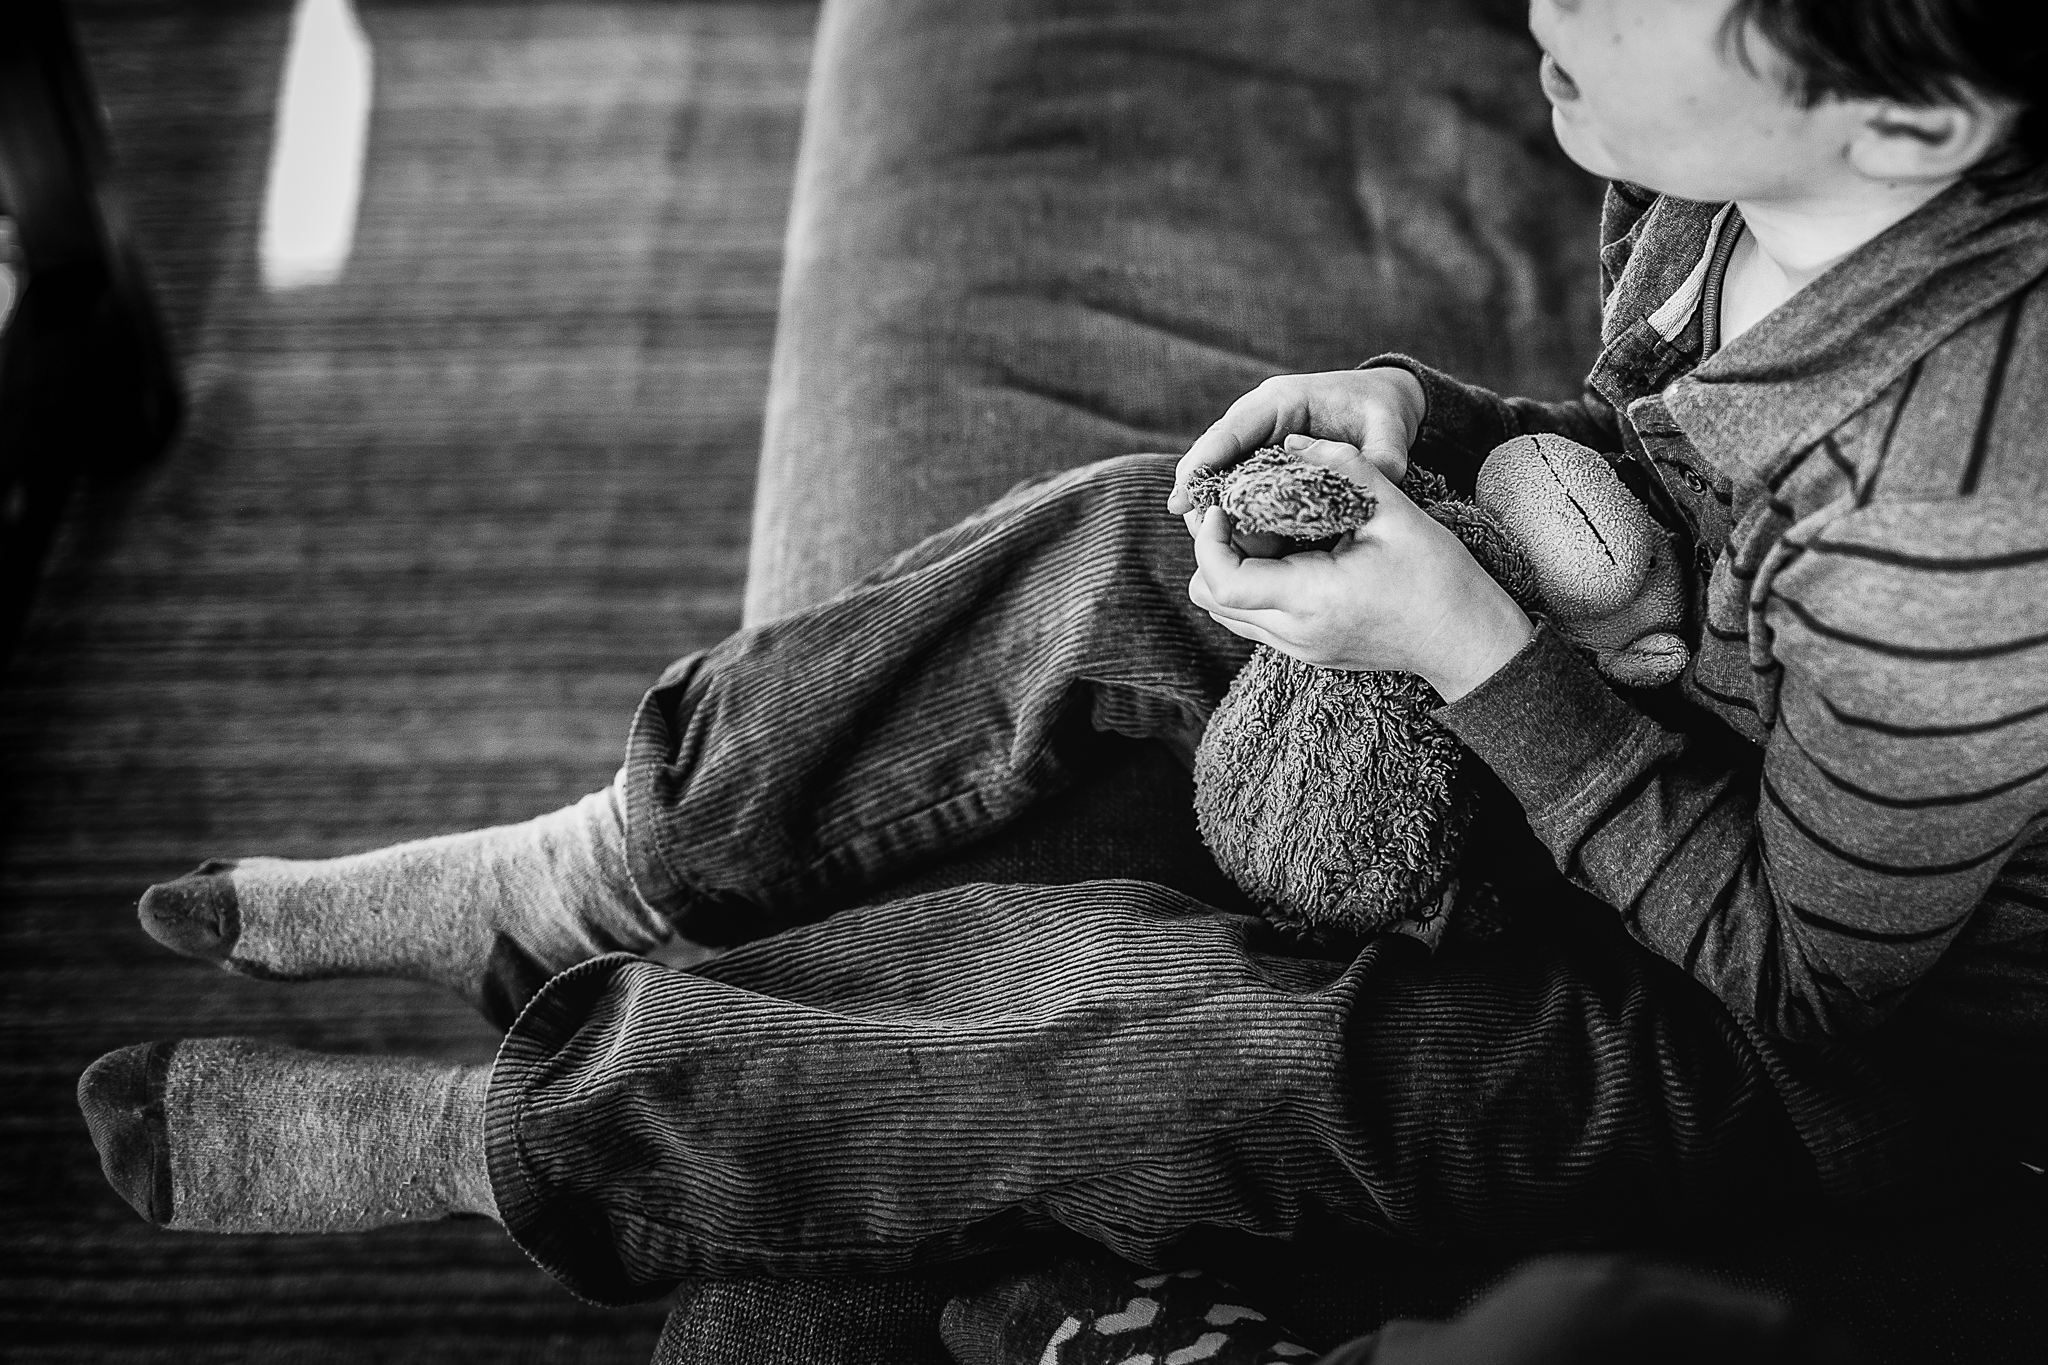 little boy's hands holding stuffed animal monkey